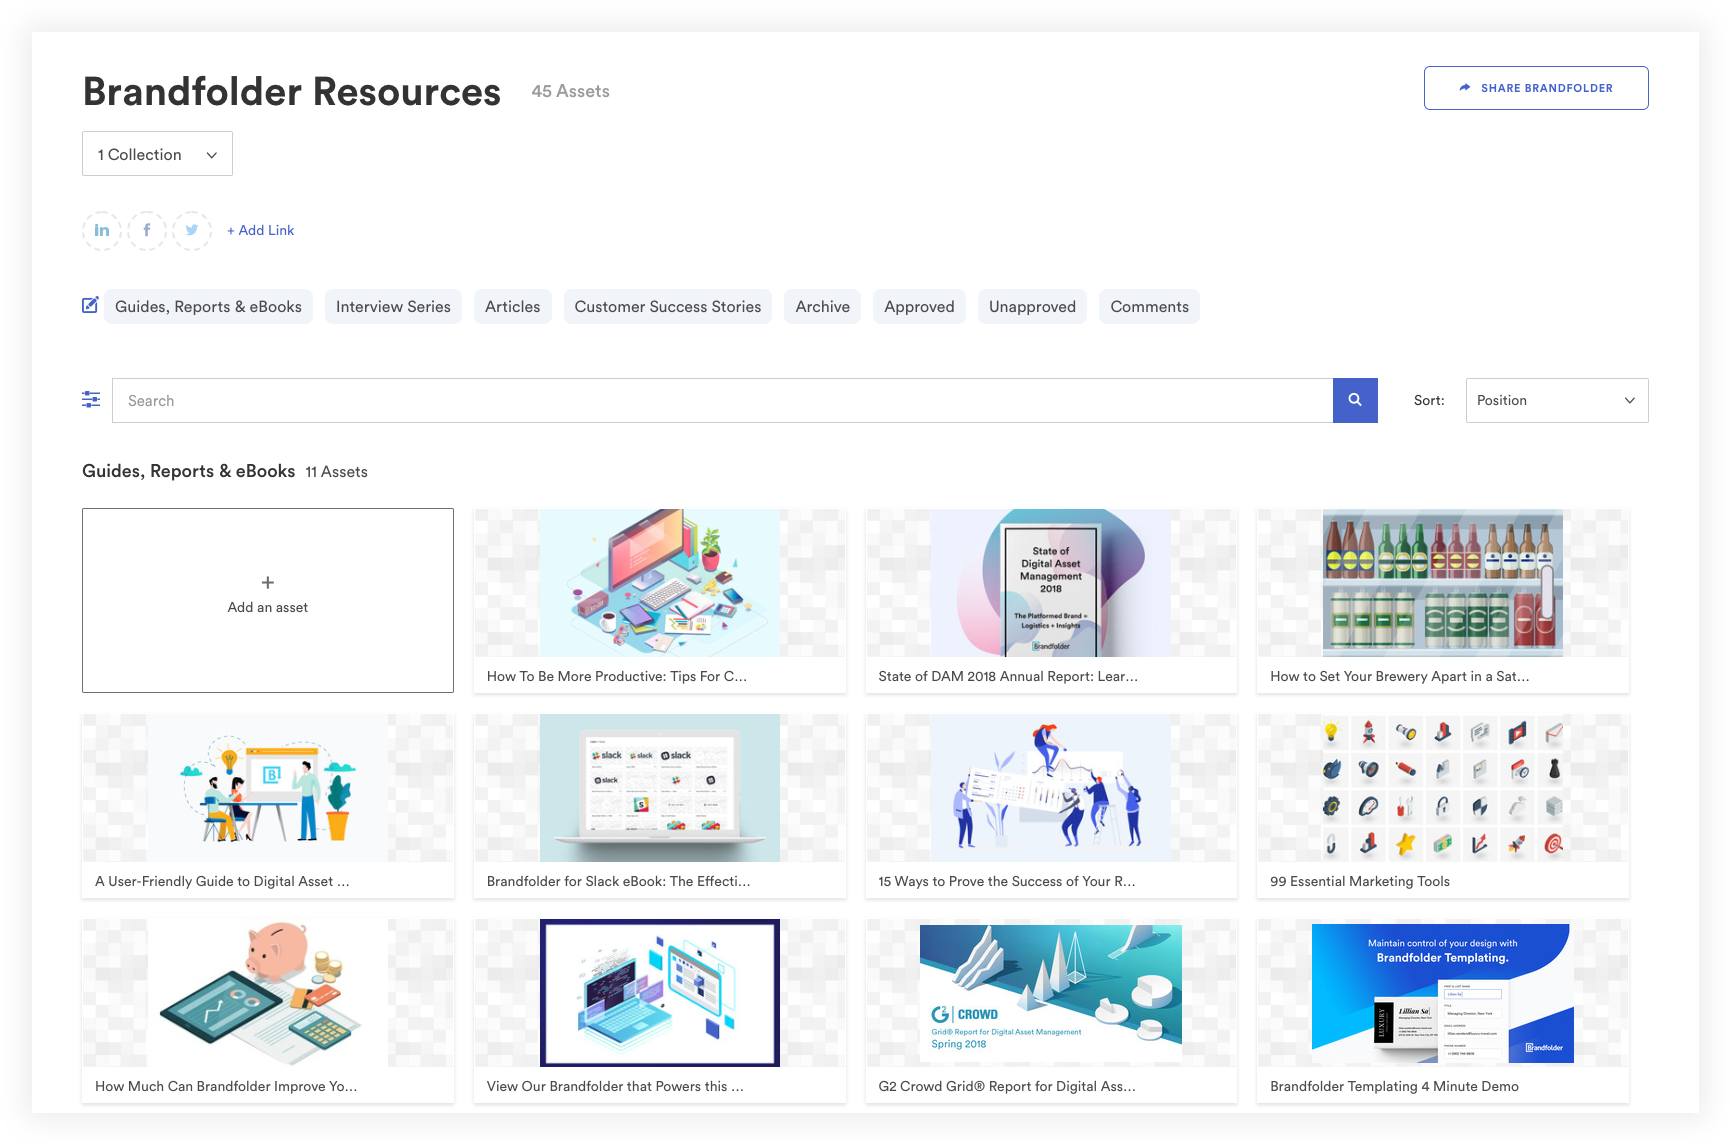 Brandfolder Resources page